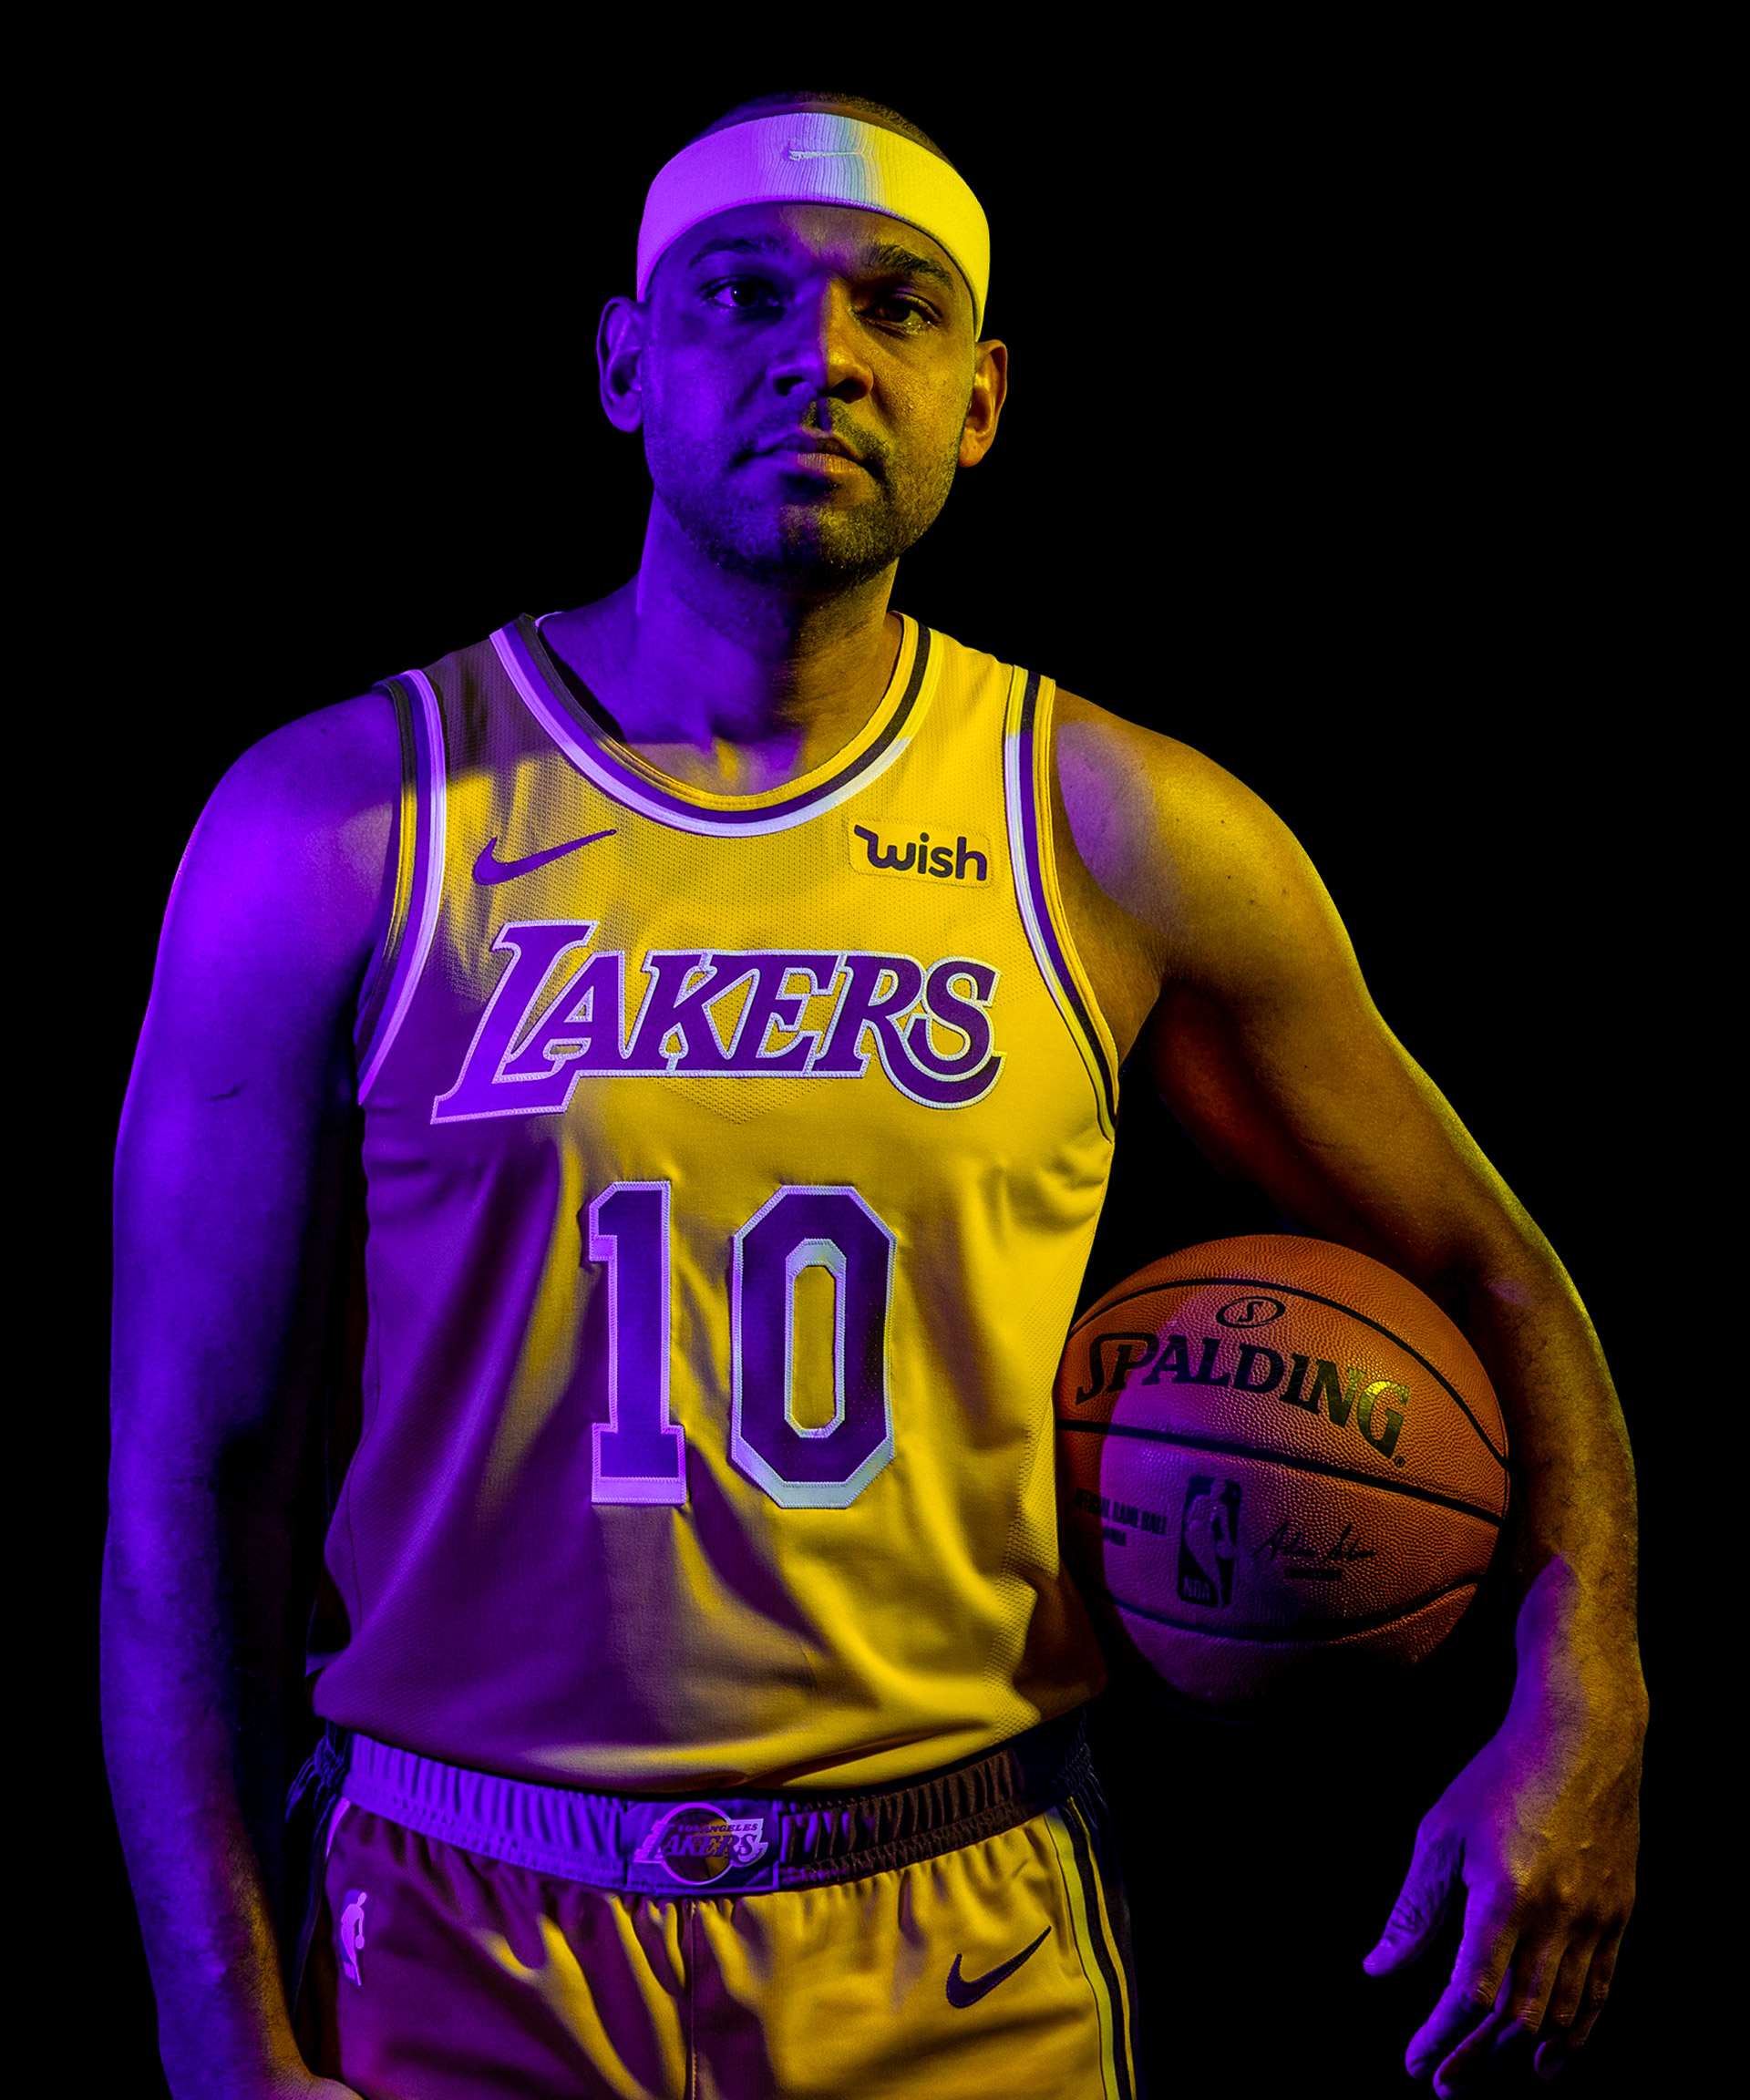 Los Angeles Lakers Roster Photos Bios Stats The Official Site Of The Los Angeles Lakers